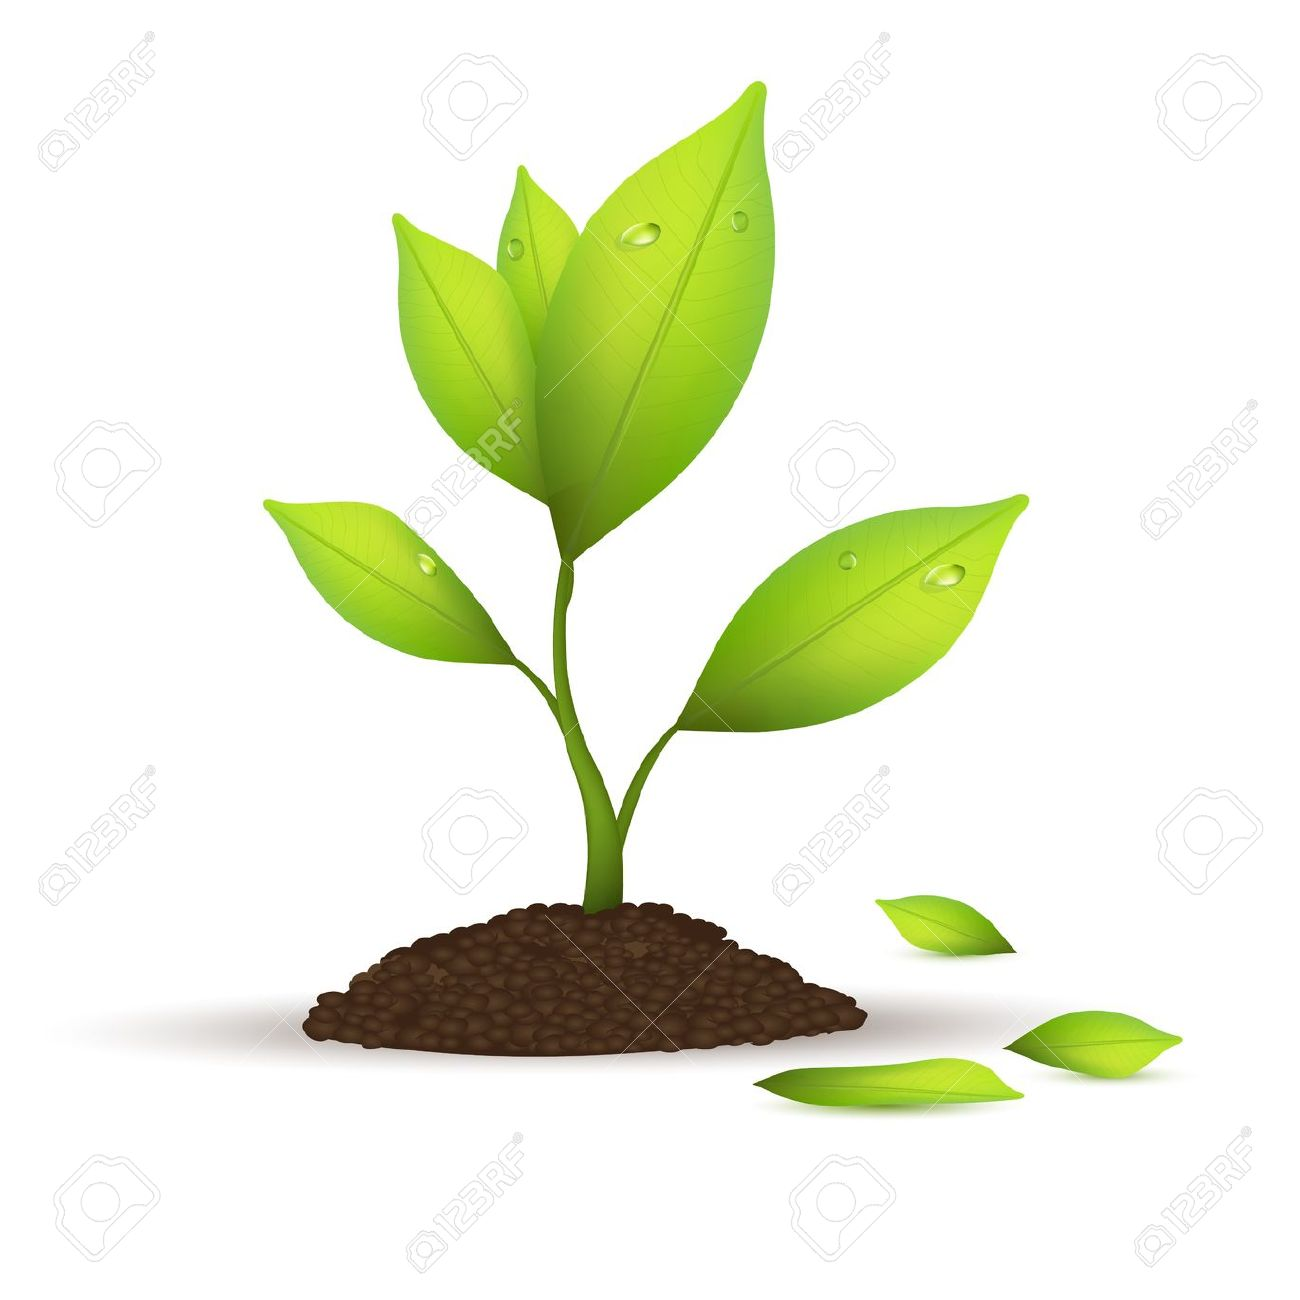 Free Leaf Growing Cliparts, Download Free Clip Art, Free.